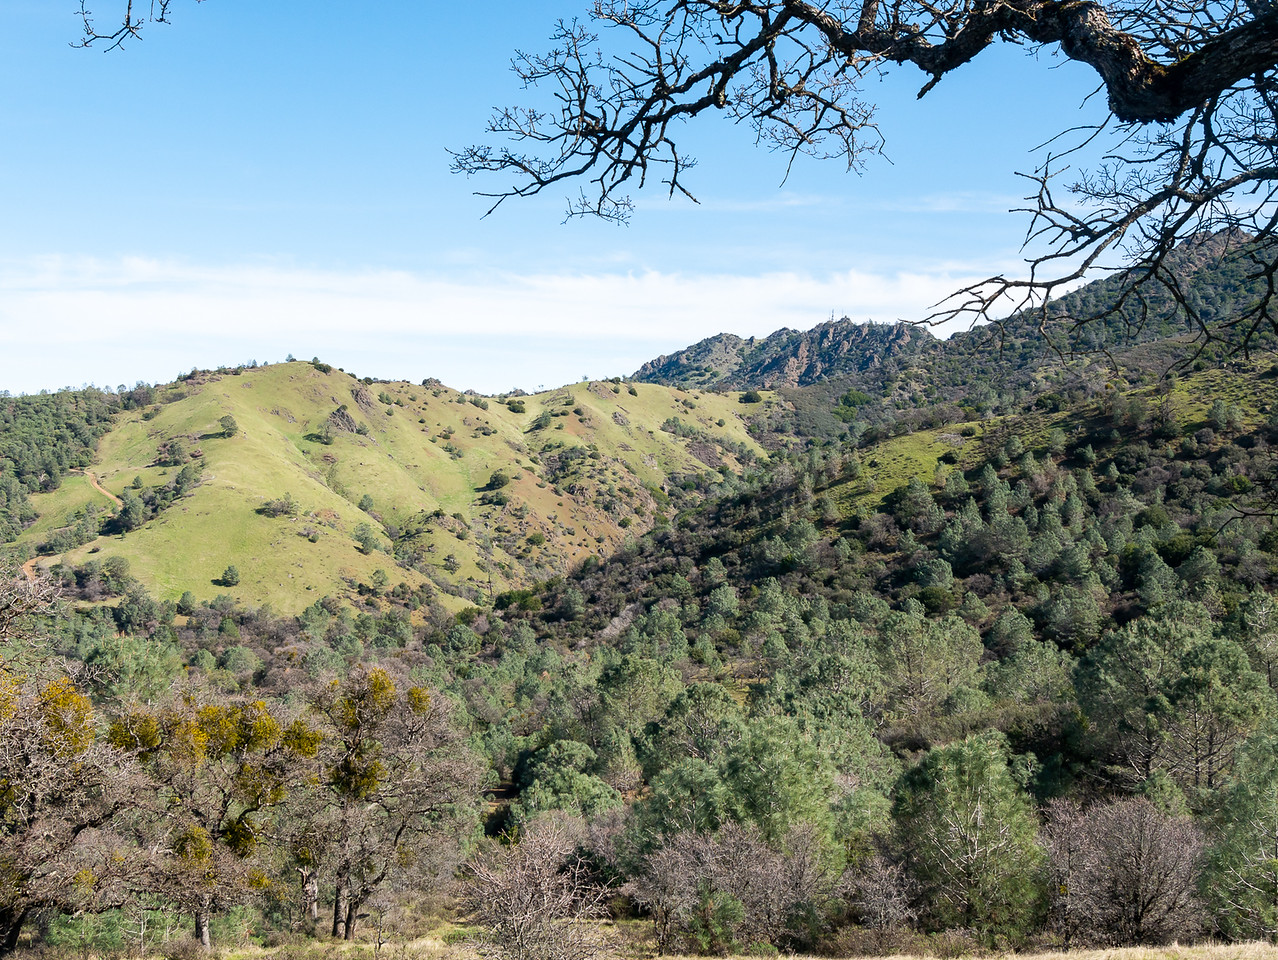 A view across the Deer Creek valley.  The road up to Merchio Gap is a the left.  North peak at the right center.  The main peak is tucked under the tree branches at the far right.  (And an oak nicely adorned with American mistletoe at the lower left.)